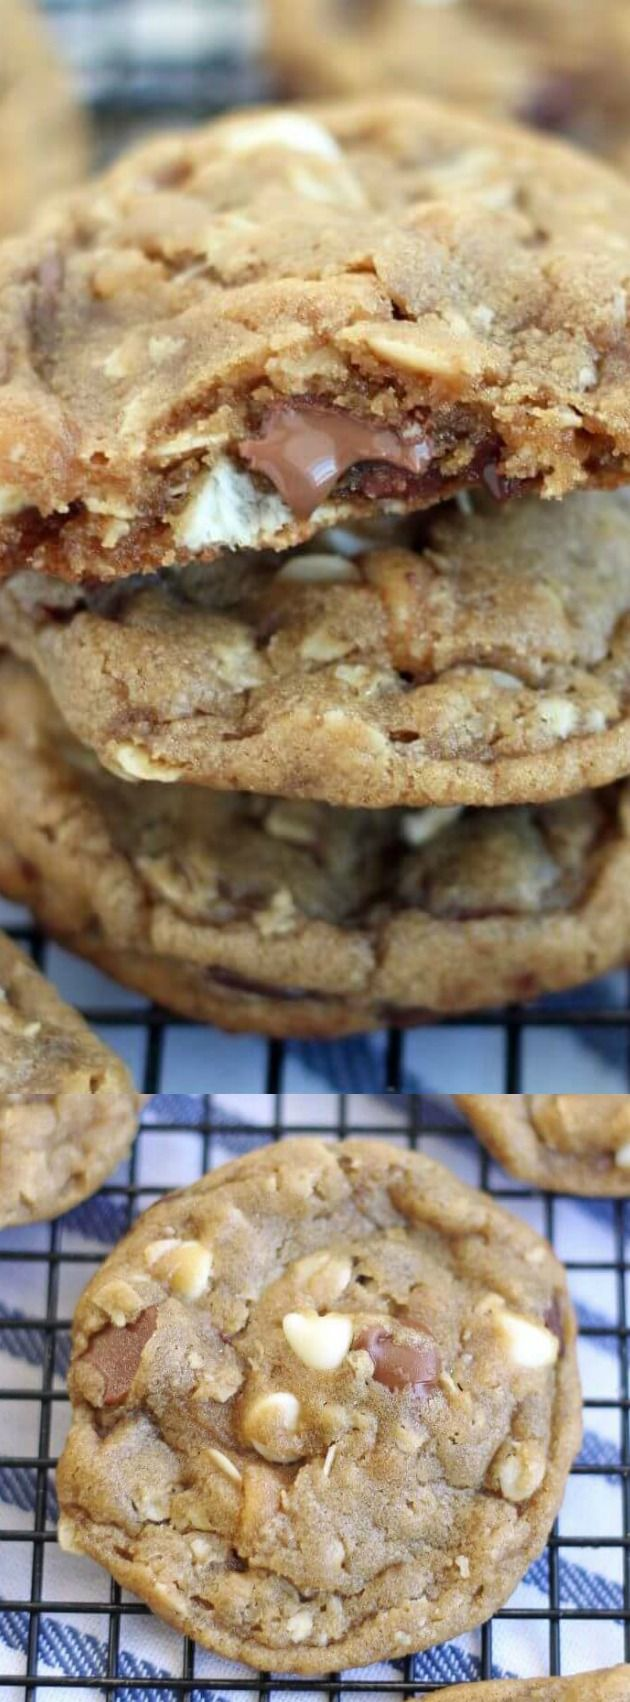 These I Want To Marry You Cookies from 5 Boys Baker are insanely good and might make your friends and family fall in love with you! You can add M&M's, nuts, chopped up candy bars, or anything else you love!